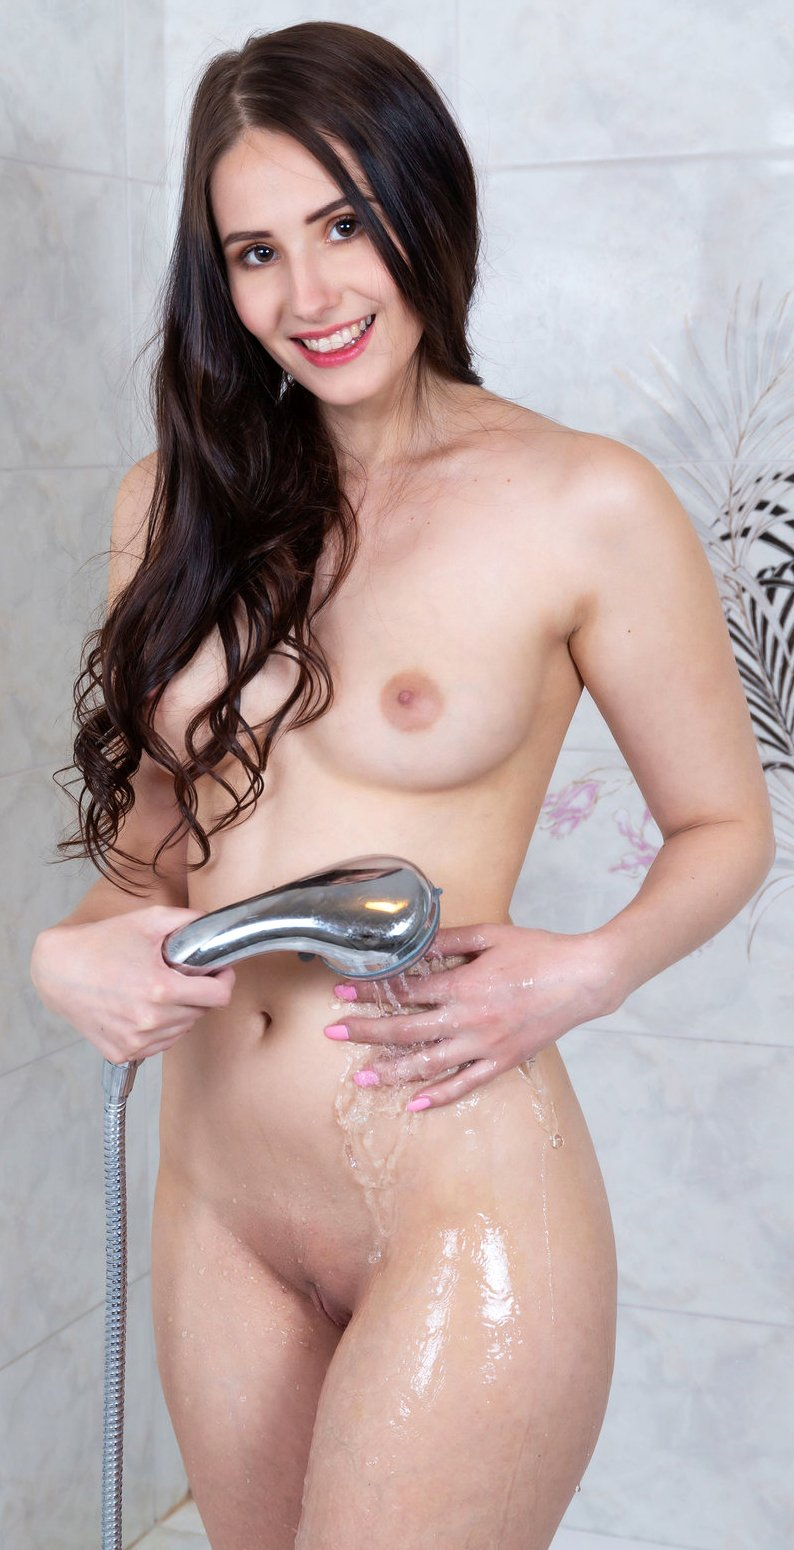 Cute brunette Vanessa A washing naked body in bathtub